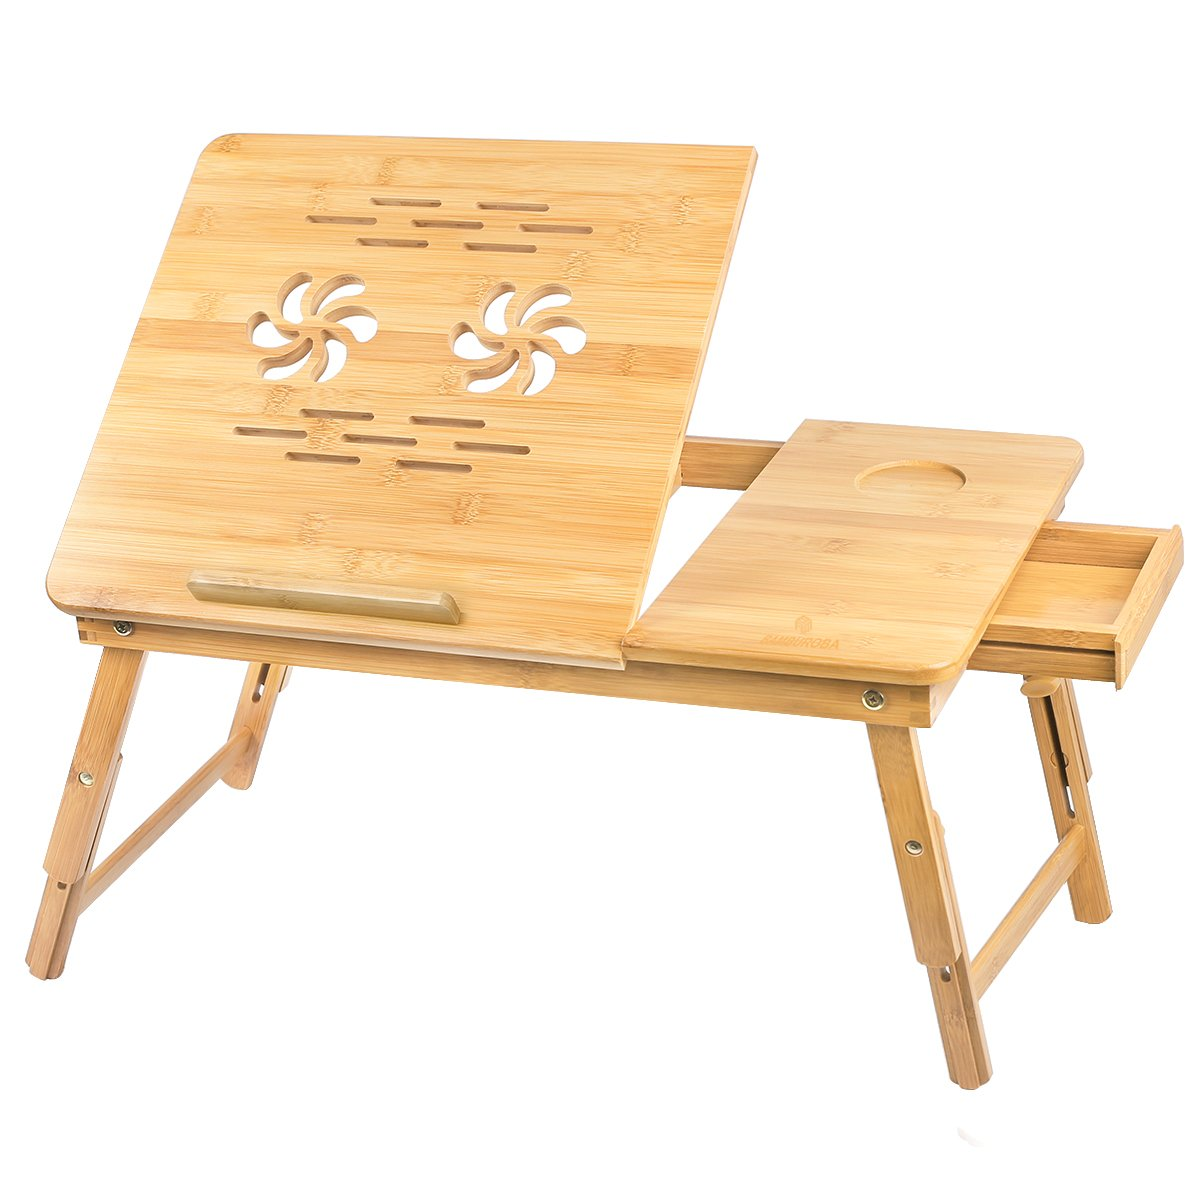 Bed Tray Table Breakfast Serving Desk Bamboo Laptop Desk with Drawer Adjustable Foldable Lap Table with Cup Holder by BAMBUROBA